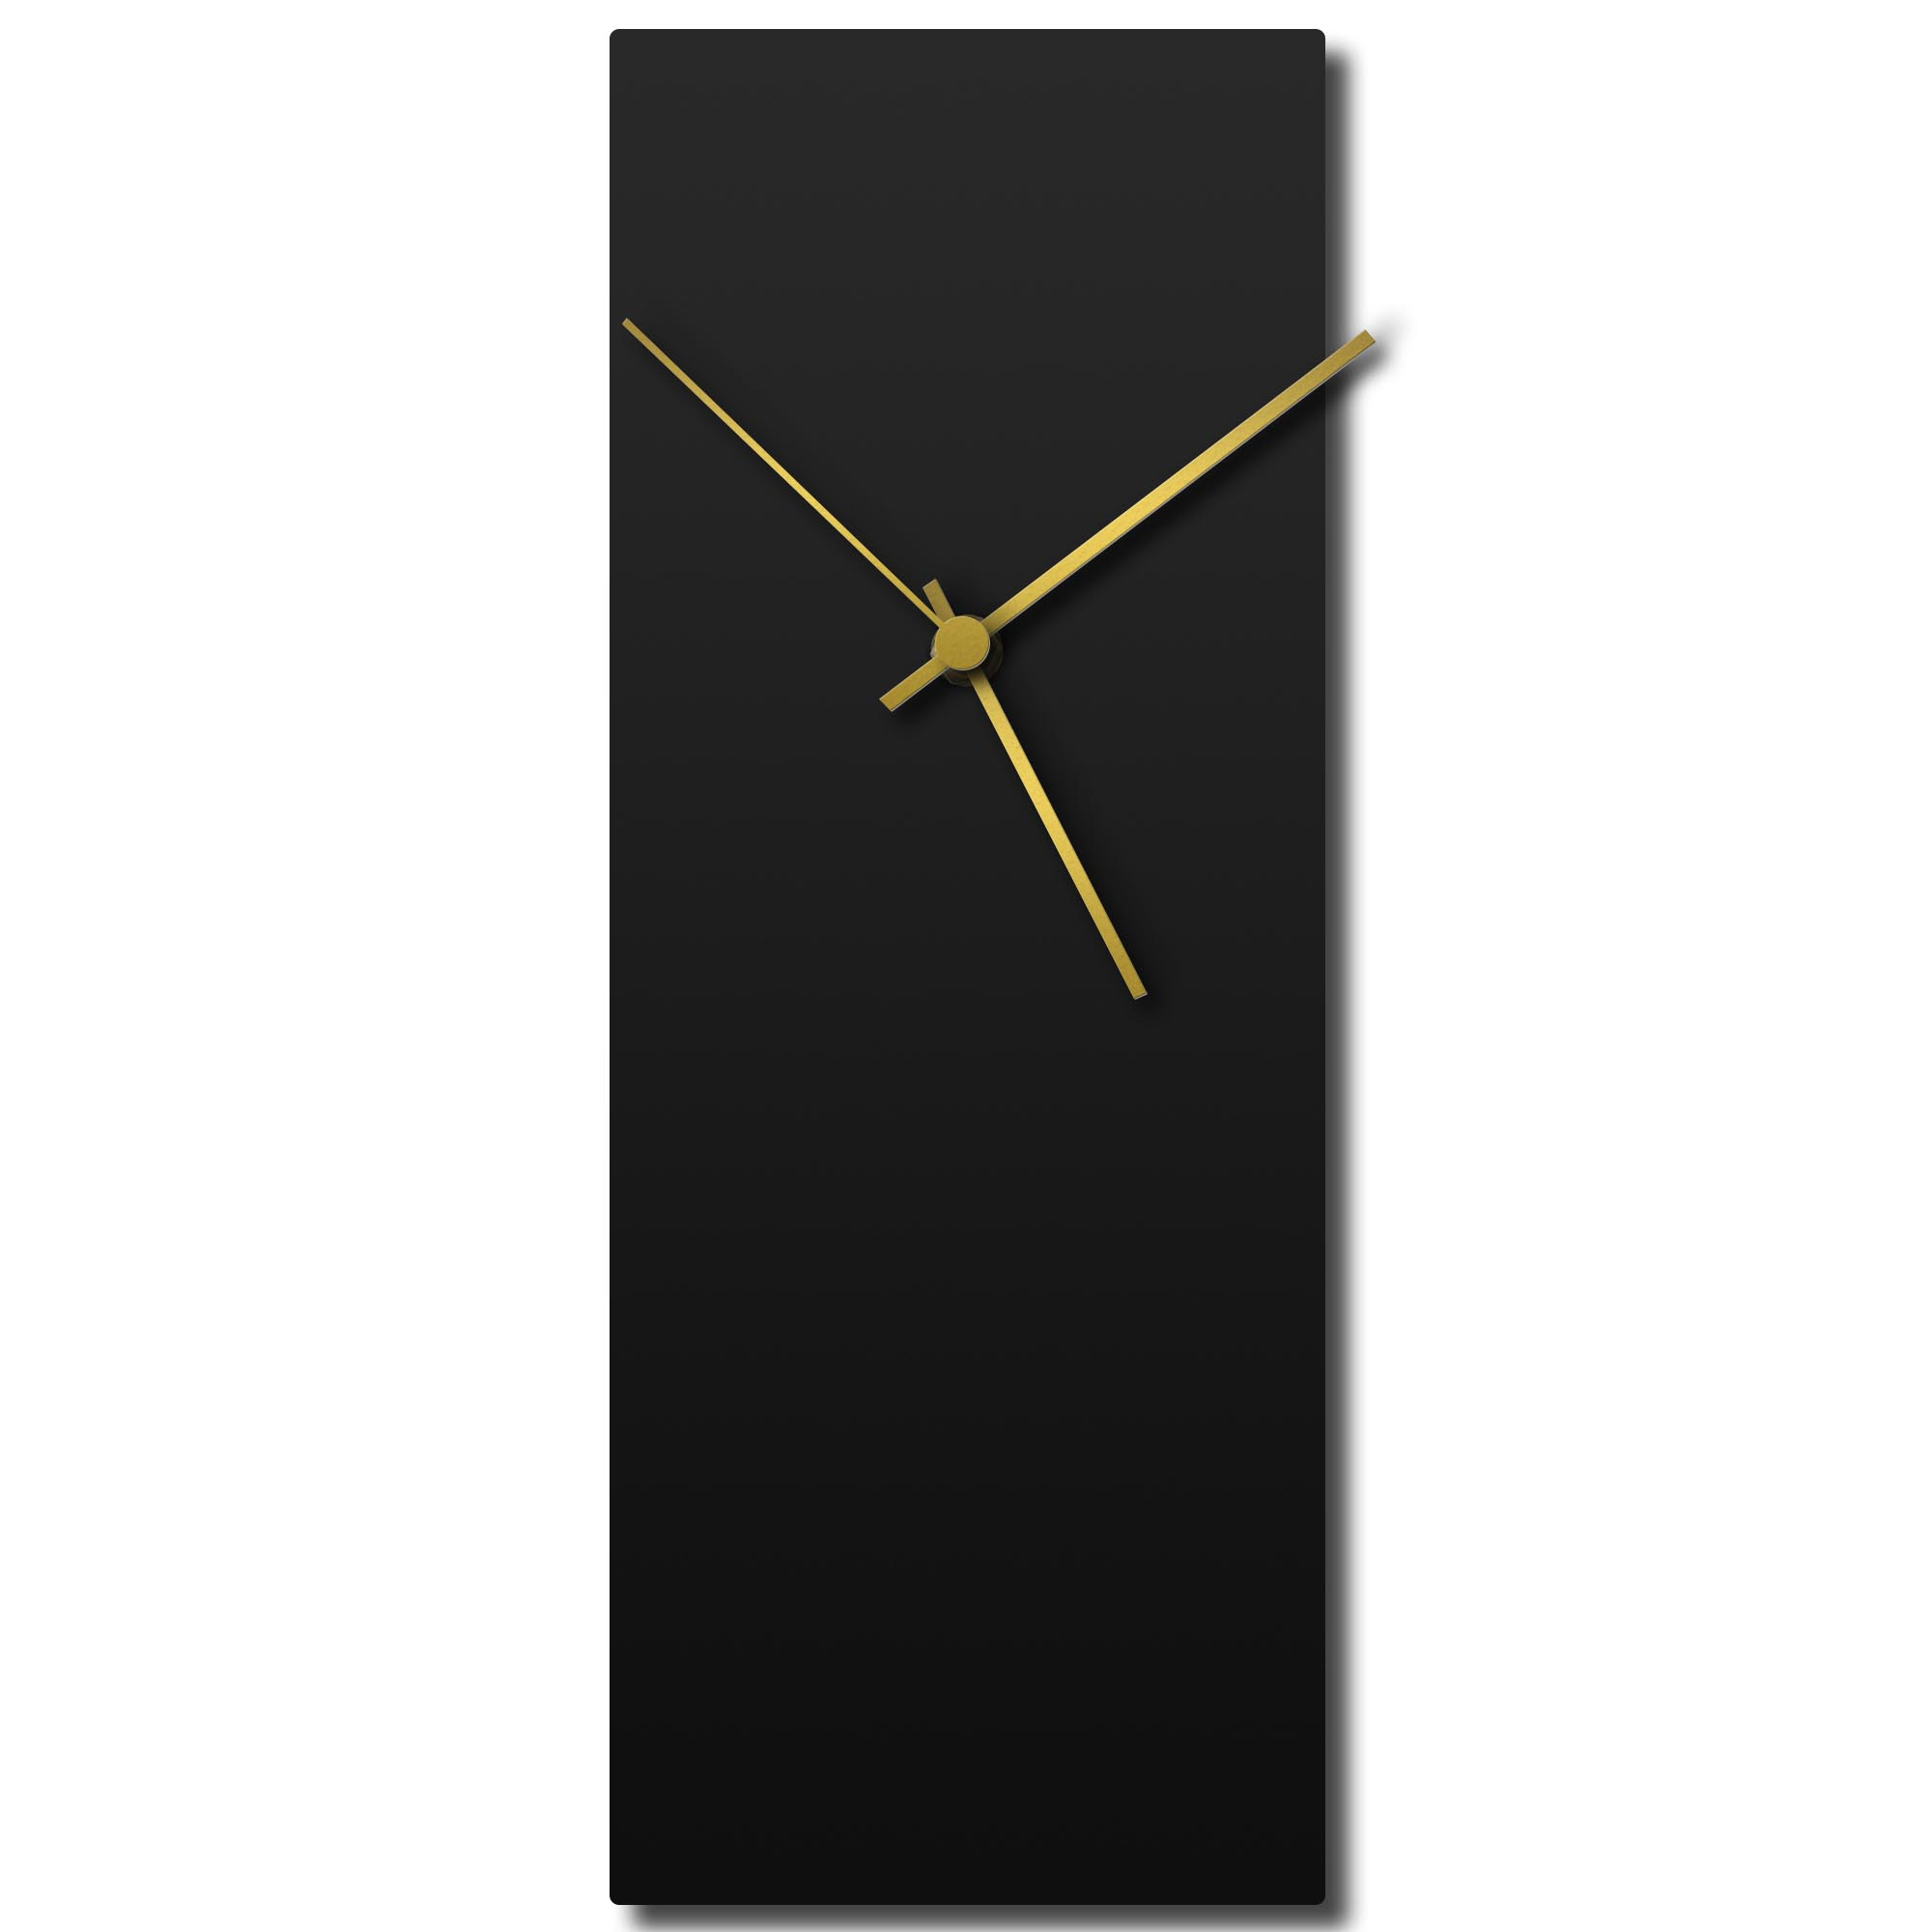 Adam Schwoeppe 'Blackout Gold Clock' Midcentury Modern Style Wall Clock